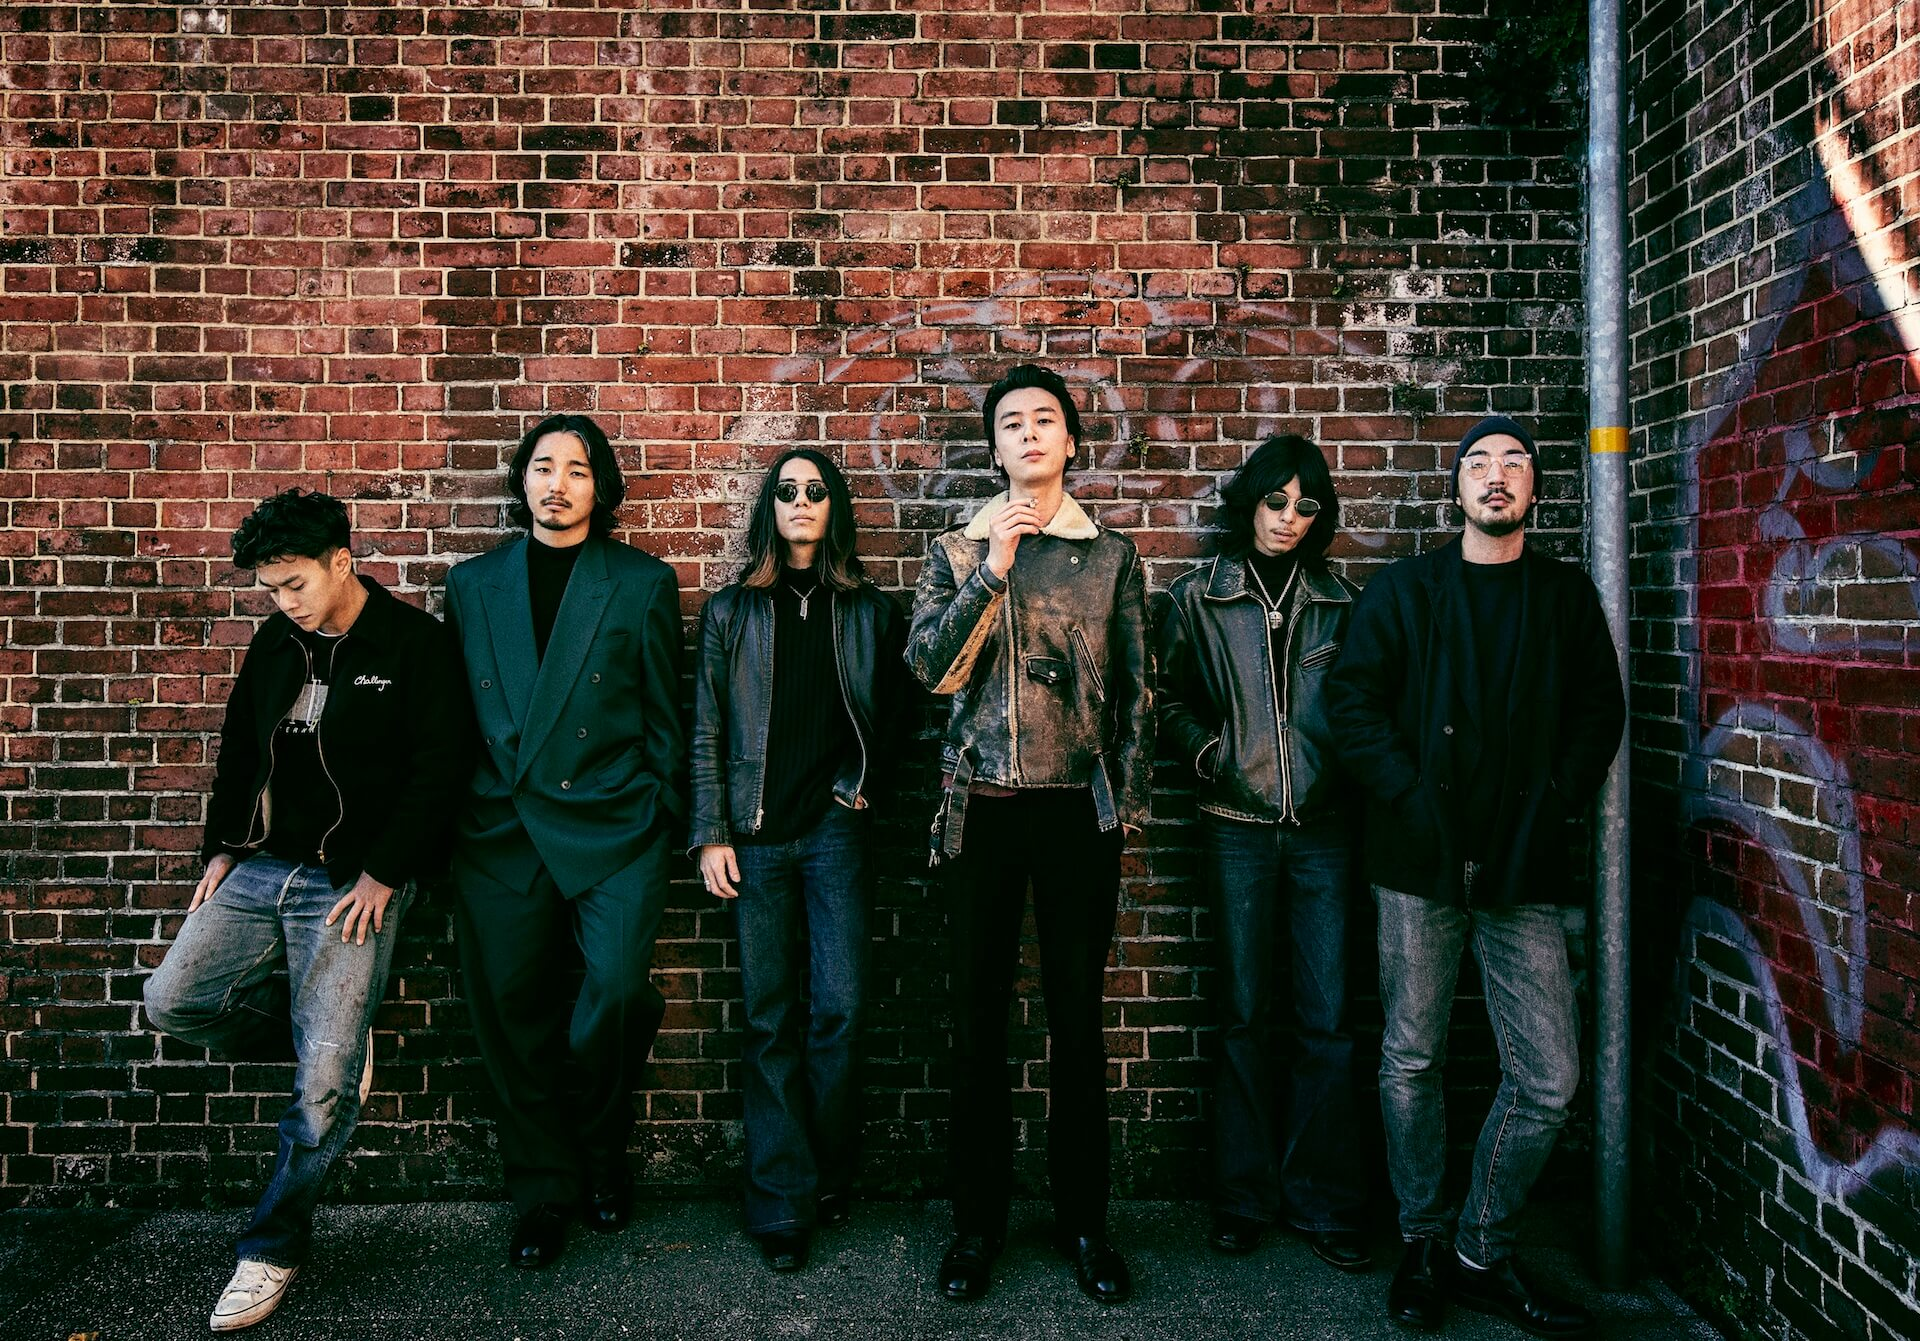 Suchmos、初のライブ音源『Suchmos THE LIVE』を本日配信リリース|最新ツアー<The Blow Your Mind TOUR 2020>の先行受付も開始 music200115_suchmos_1